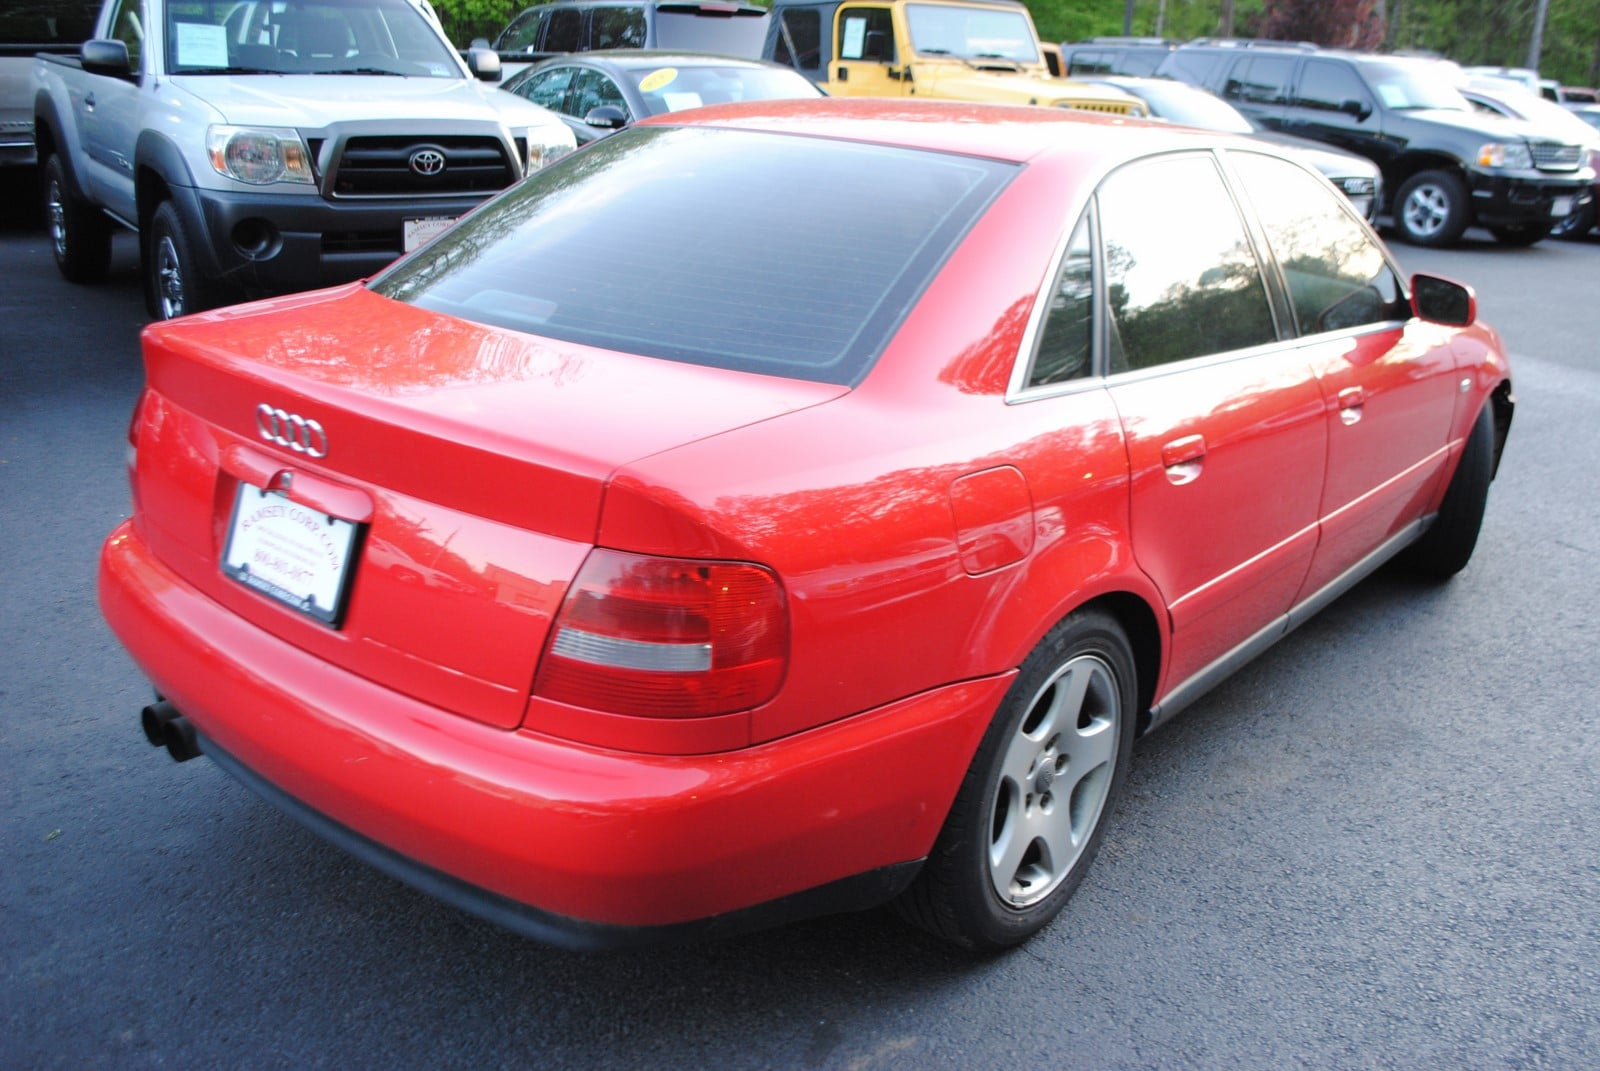 used 2000 audi a4 for sale west milford nj rh ramseycorp com 2003 Audi A4 Quattro Audi A4 Seat Covers